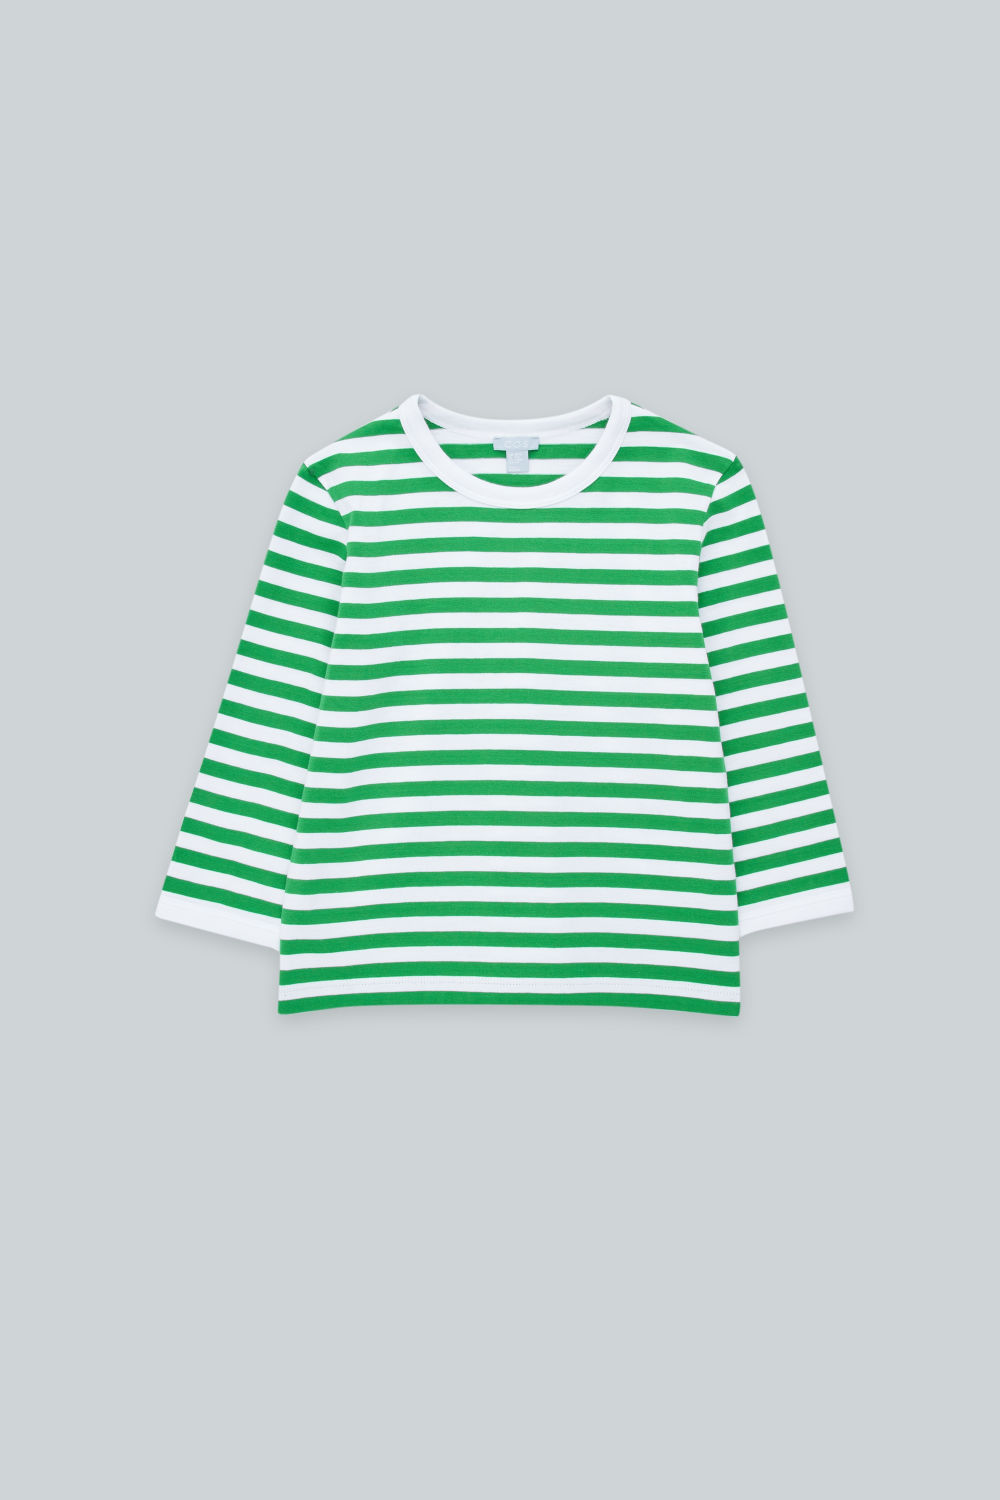 코스 보이즈 긴팔 티셔츠 COS STRIPED TOP WITH ELBOW PATCHES,Green \/ white \/ navy